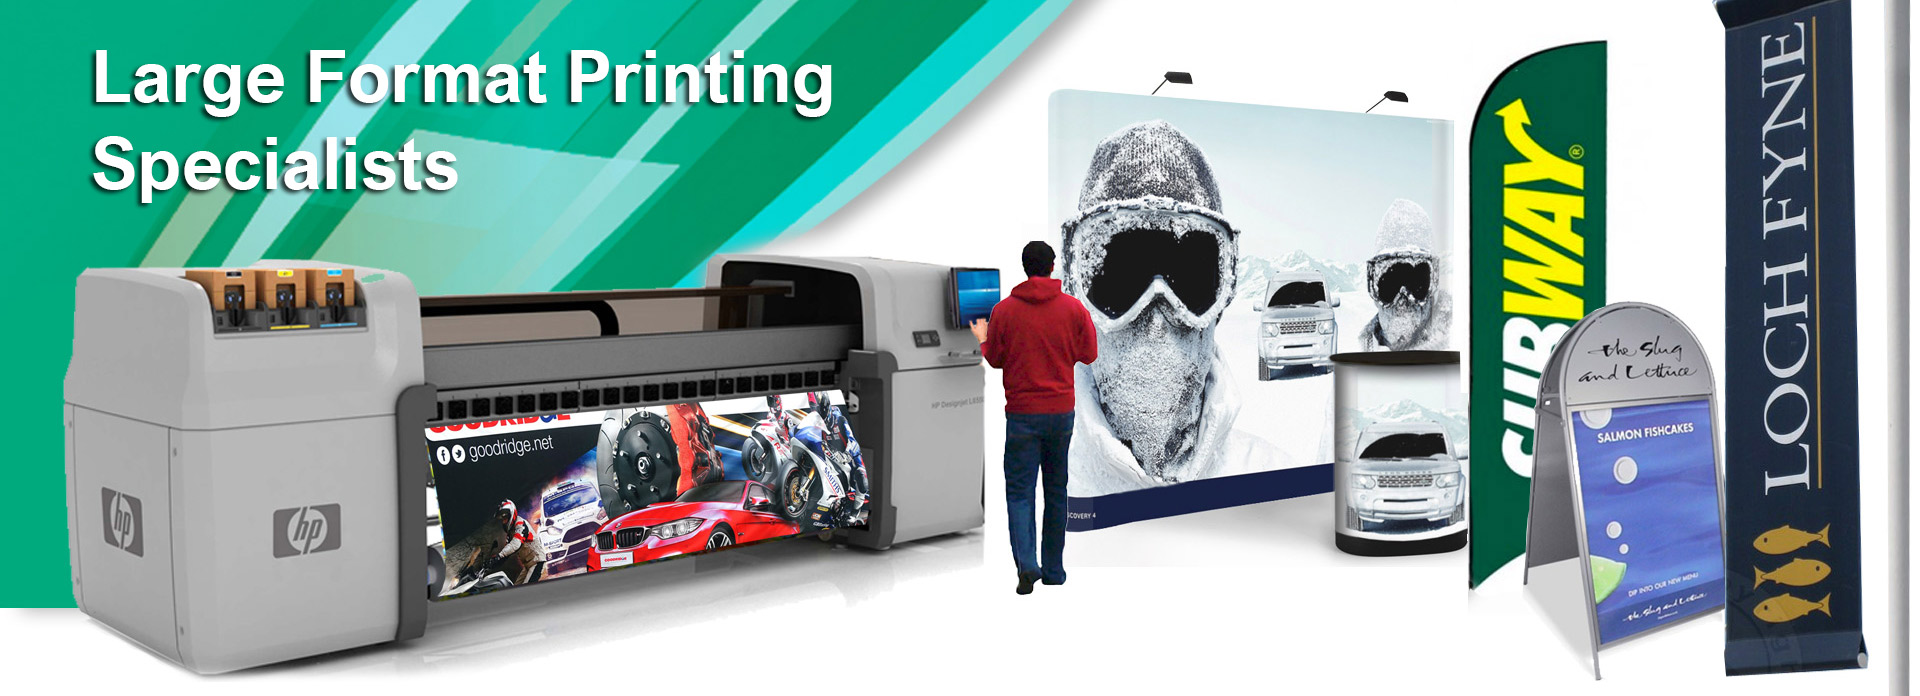 poster printing services posters with a high service poster printing